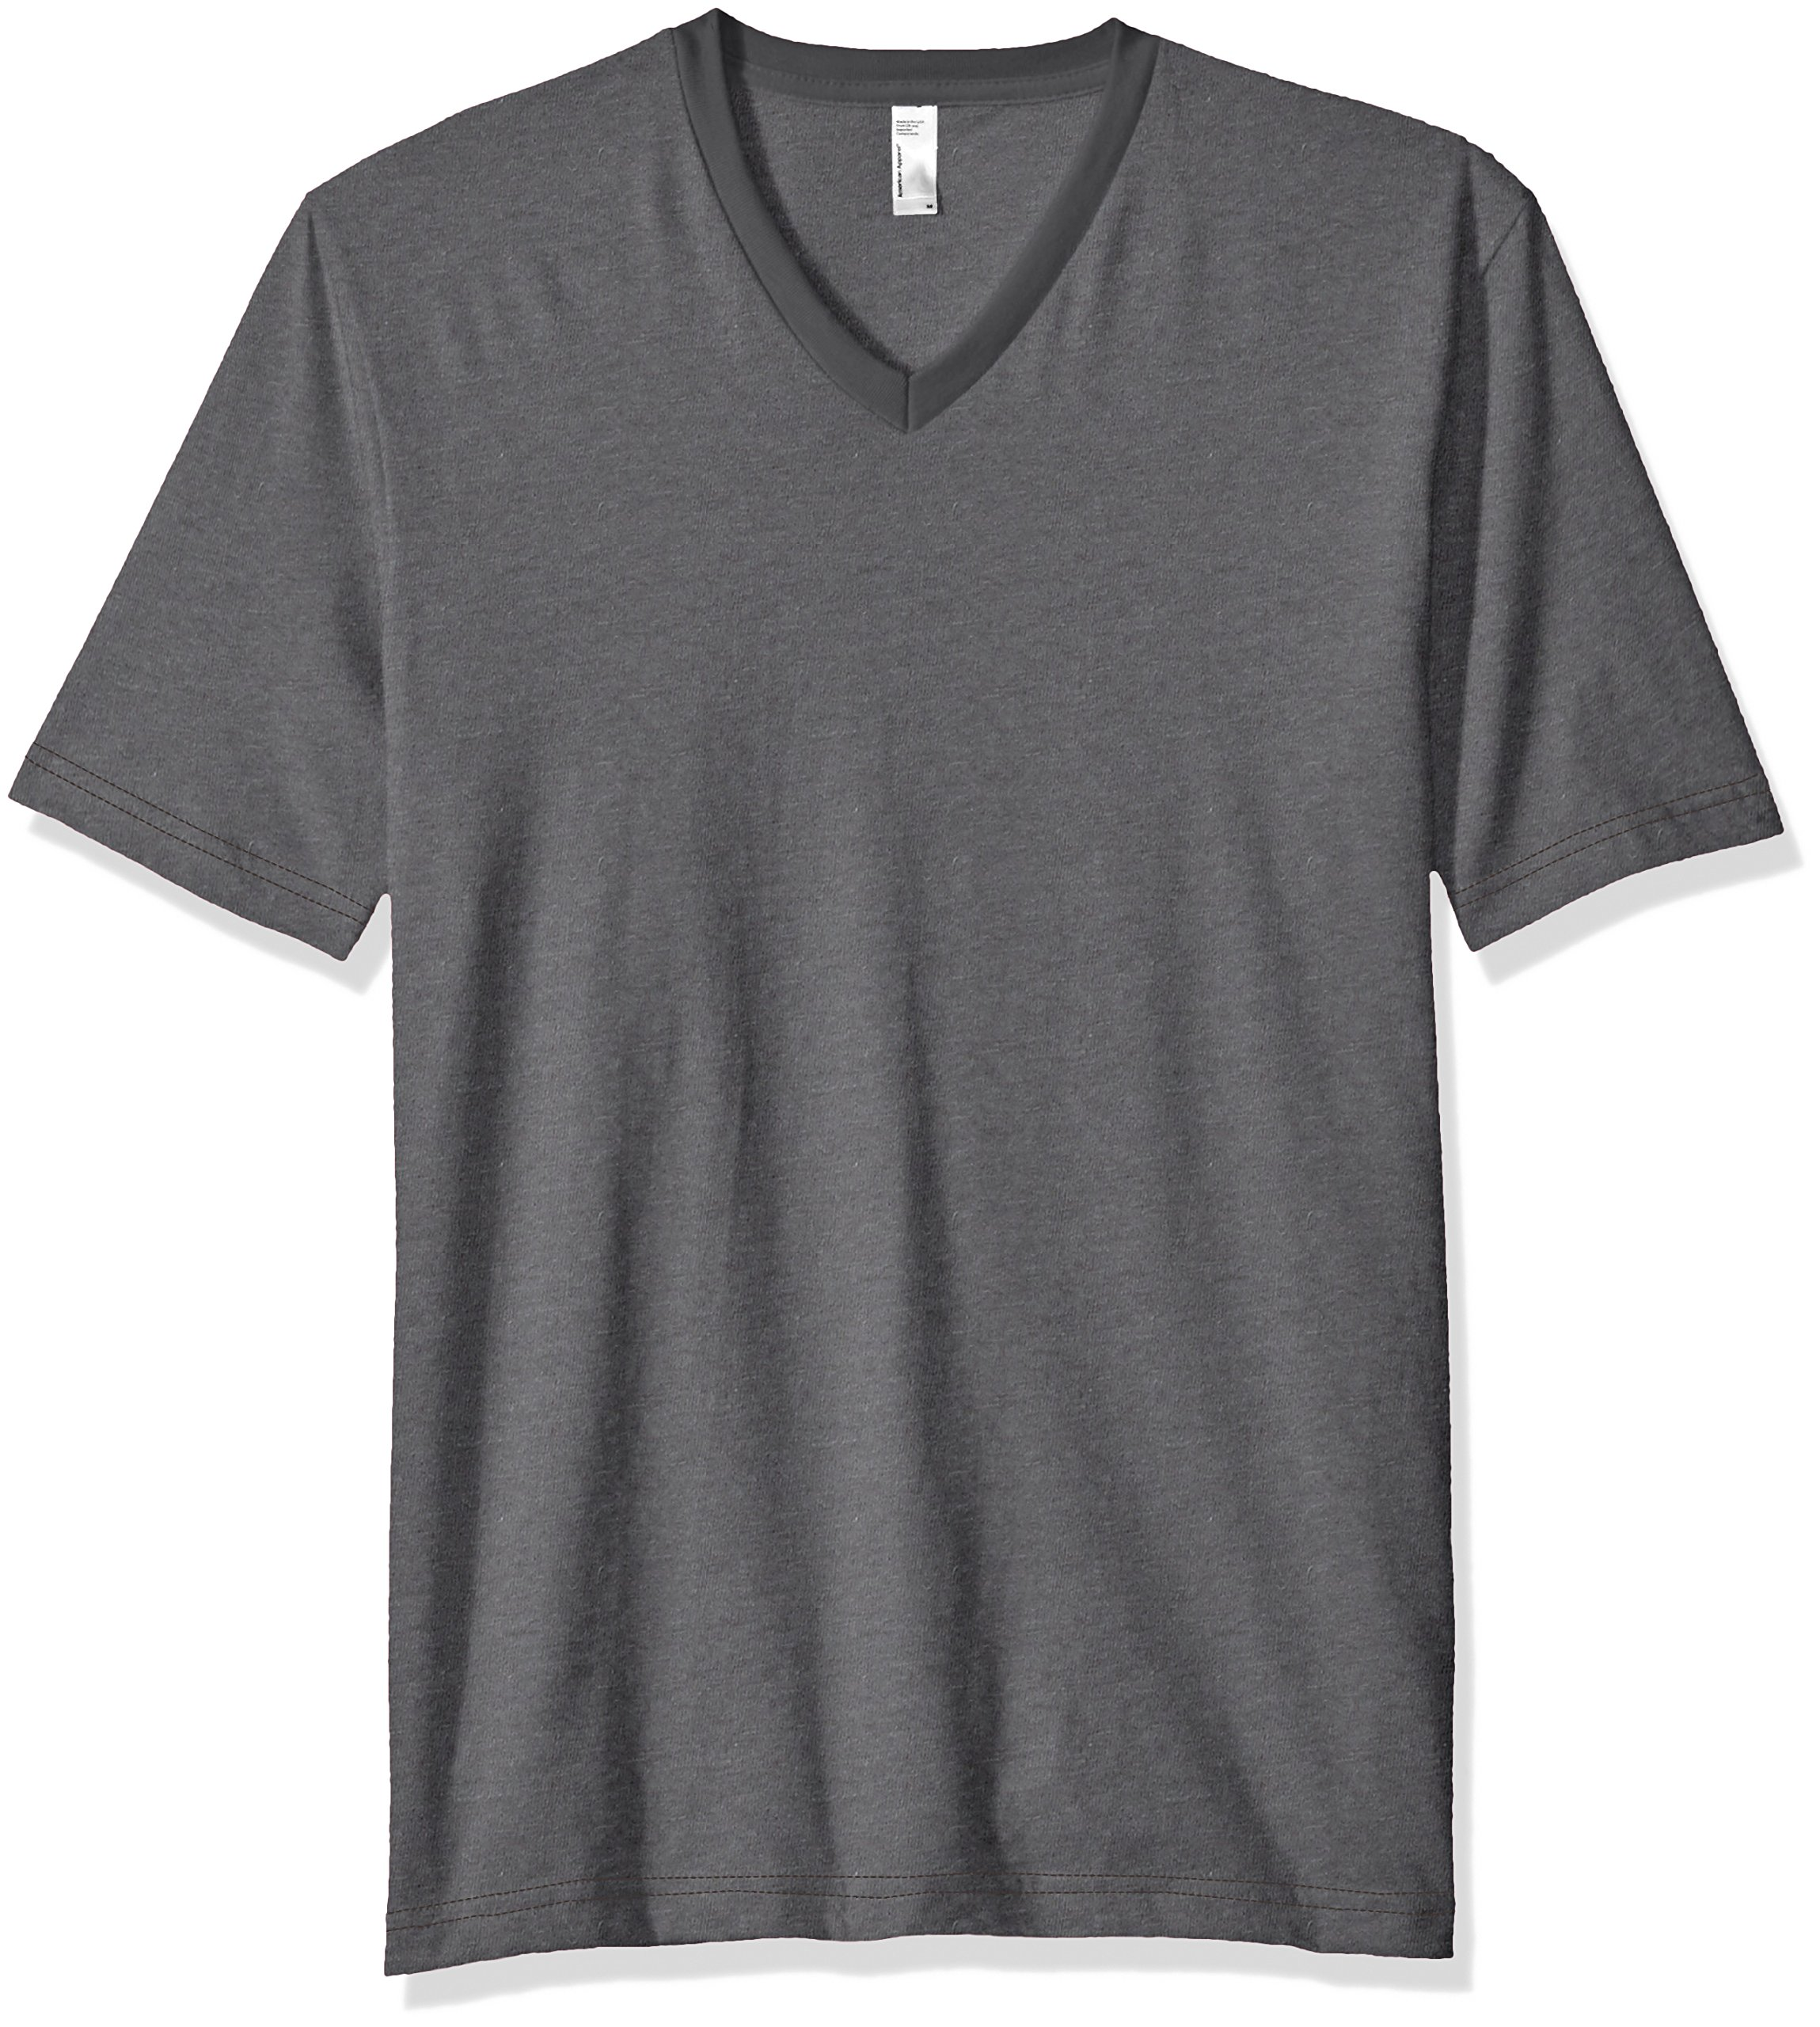 American Apparel Men's Fine Jersey Short Sleeve Classic V-Neck T-Shirt, Asphalt, X-Large